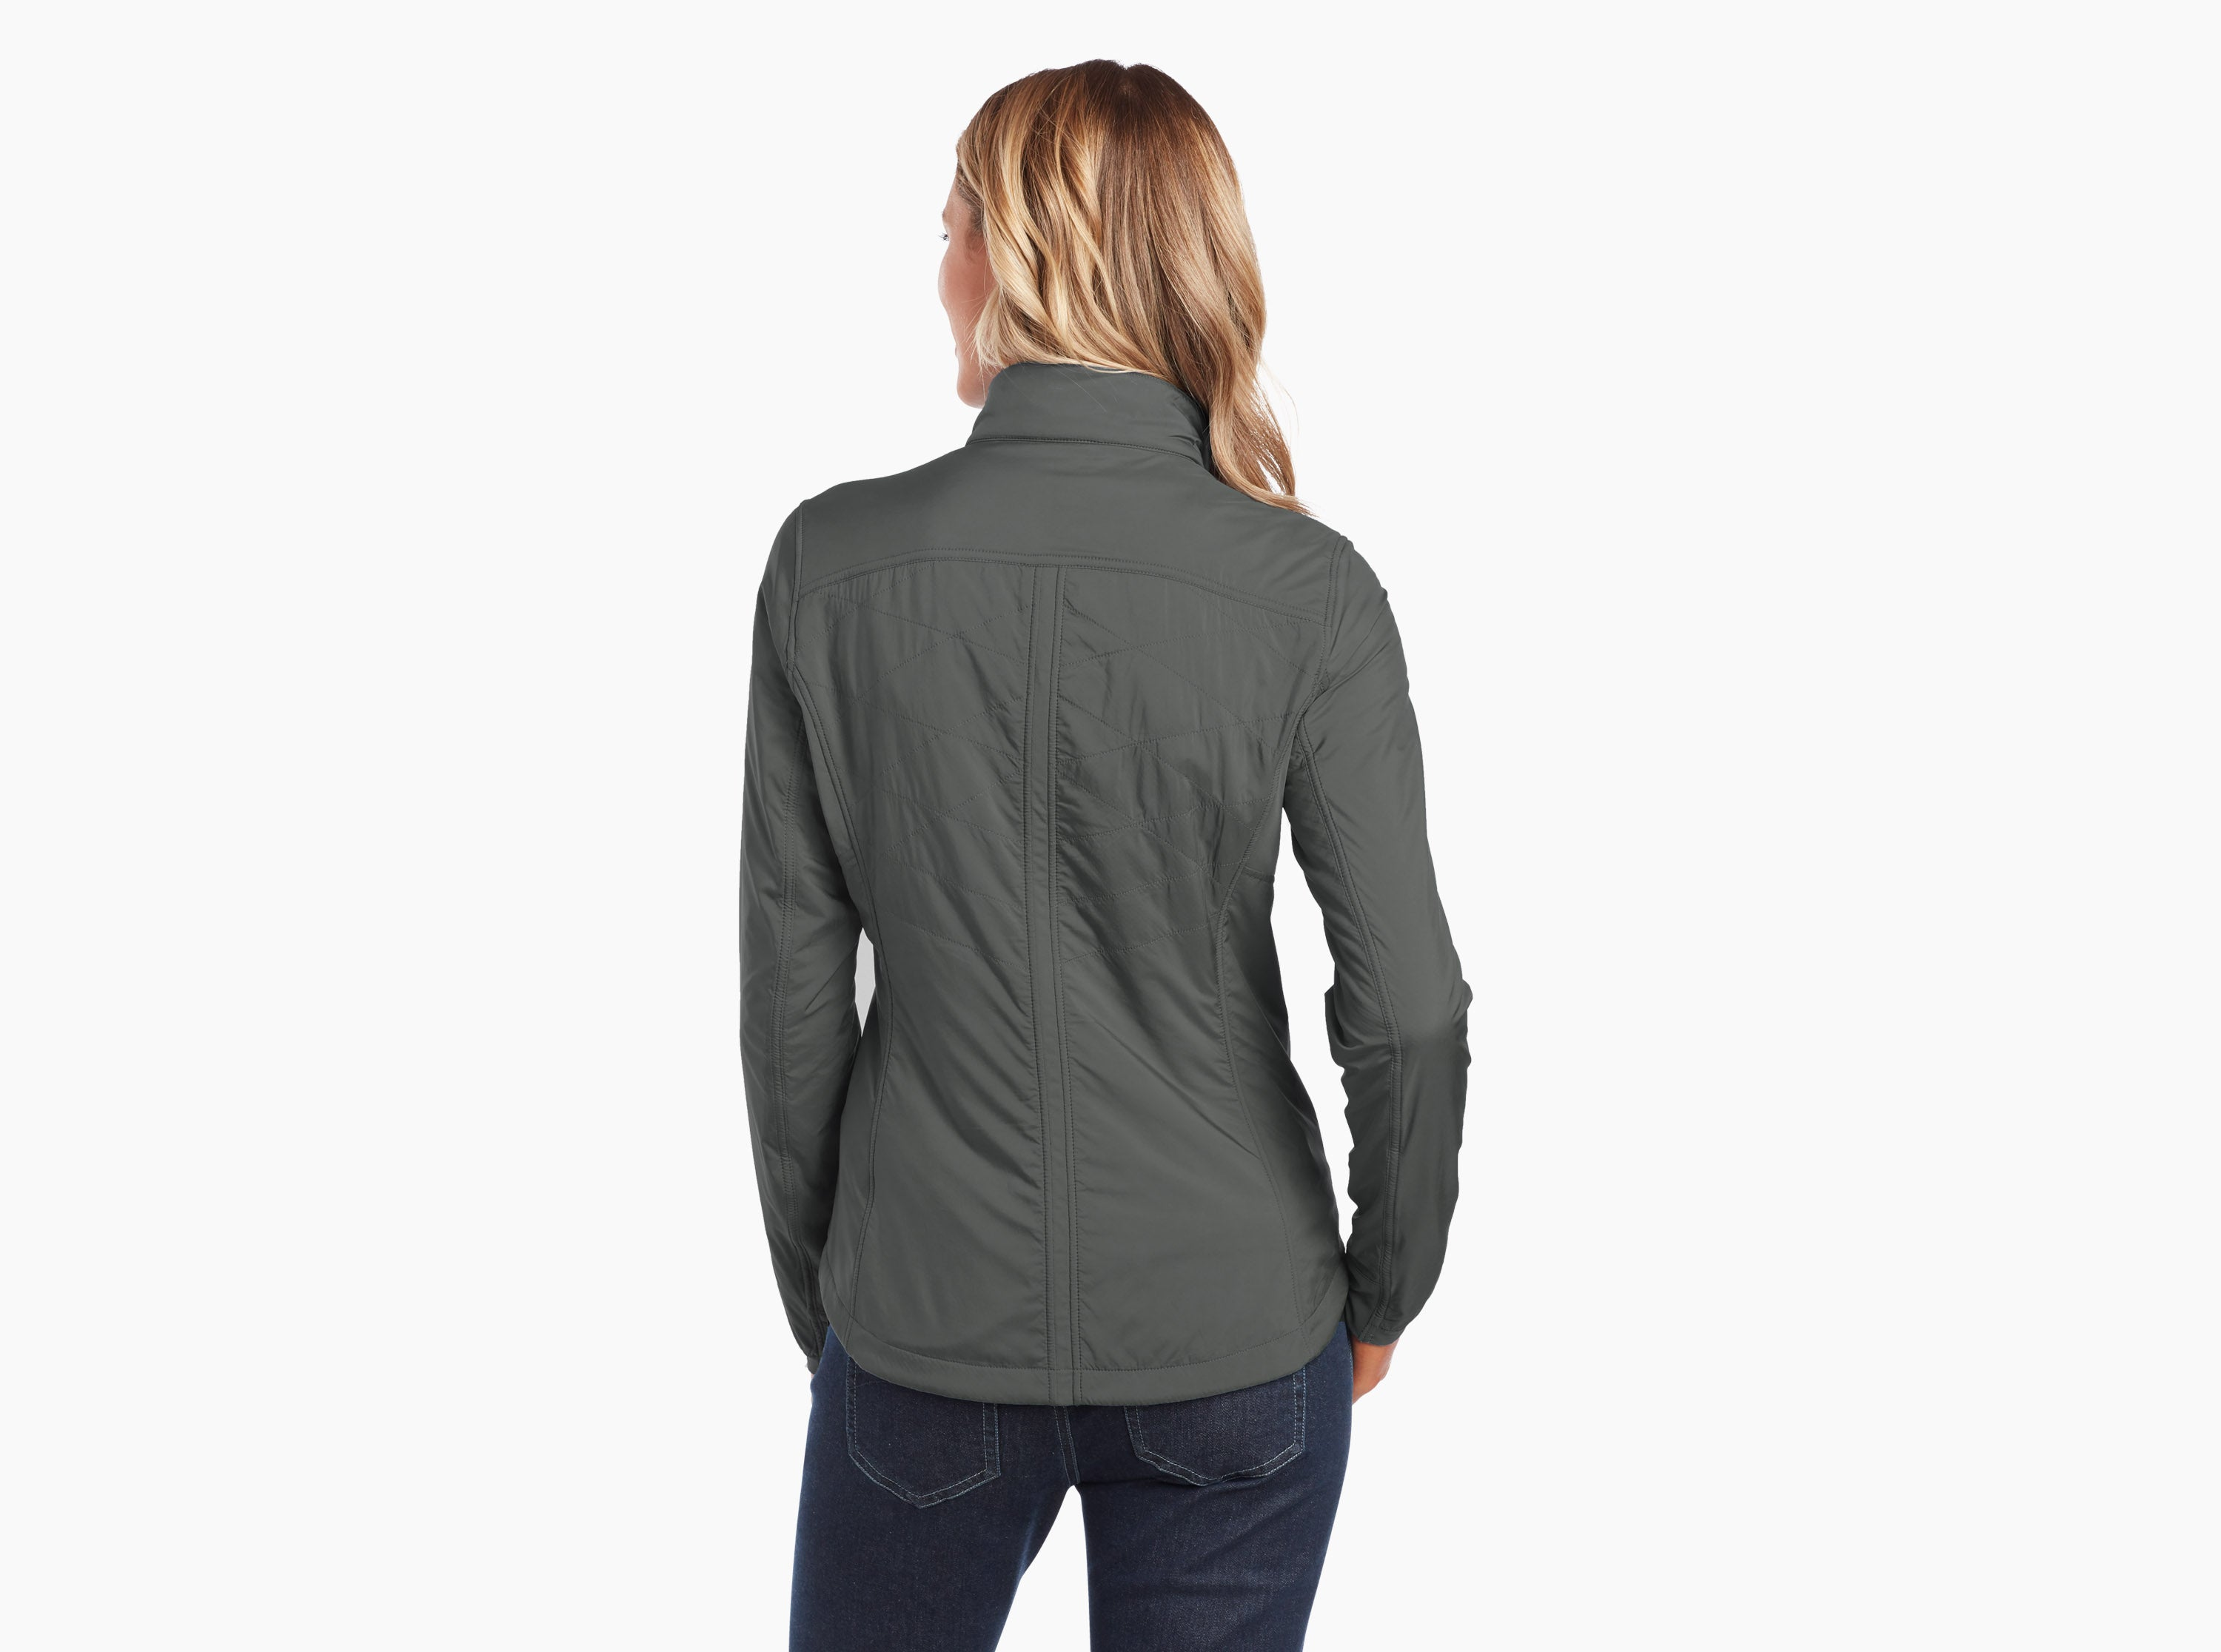 Kuhl The One Insulated Jacket for Ladies in Sea Pine